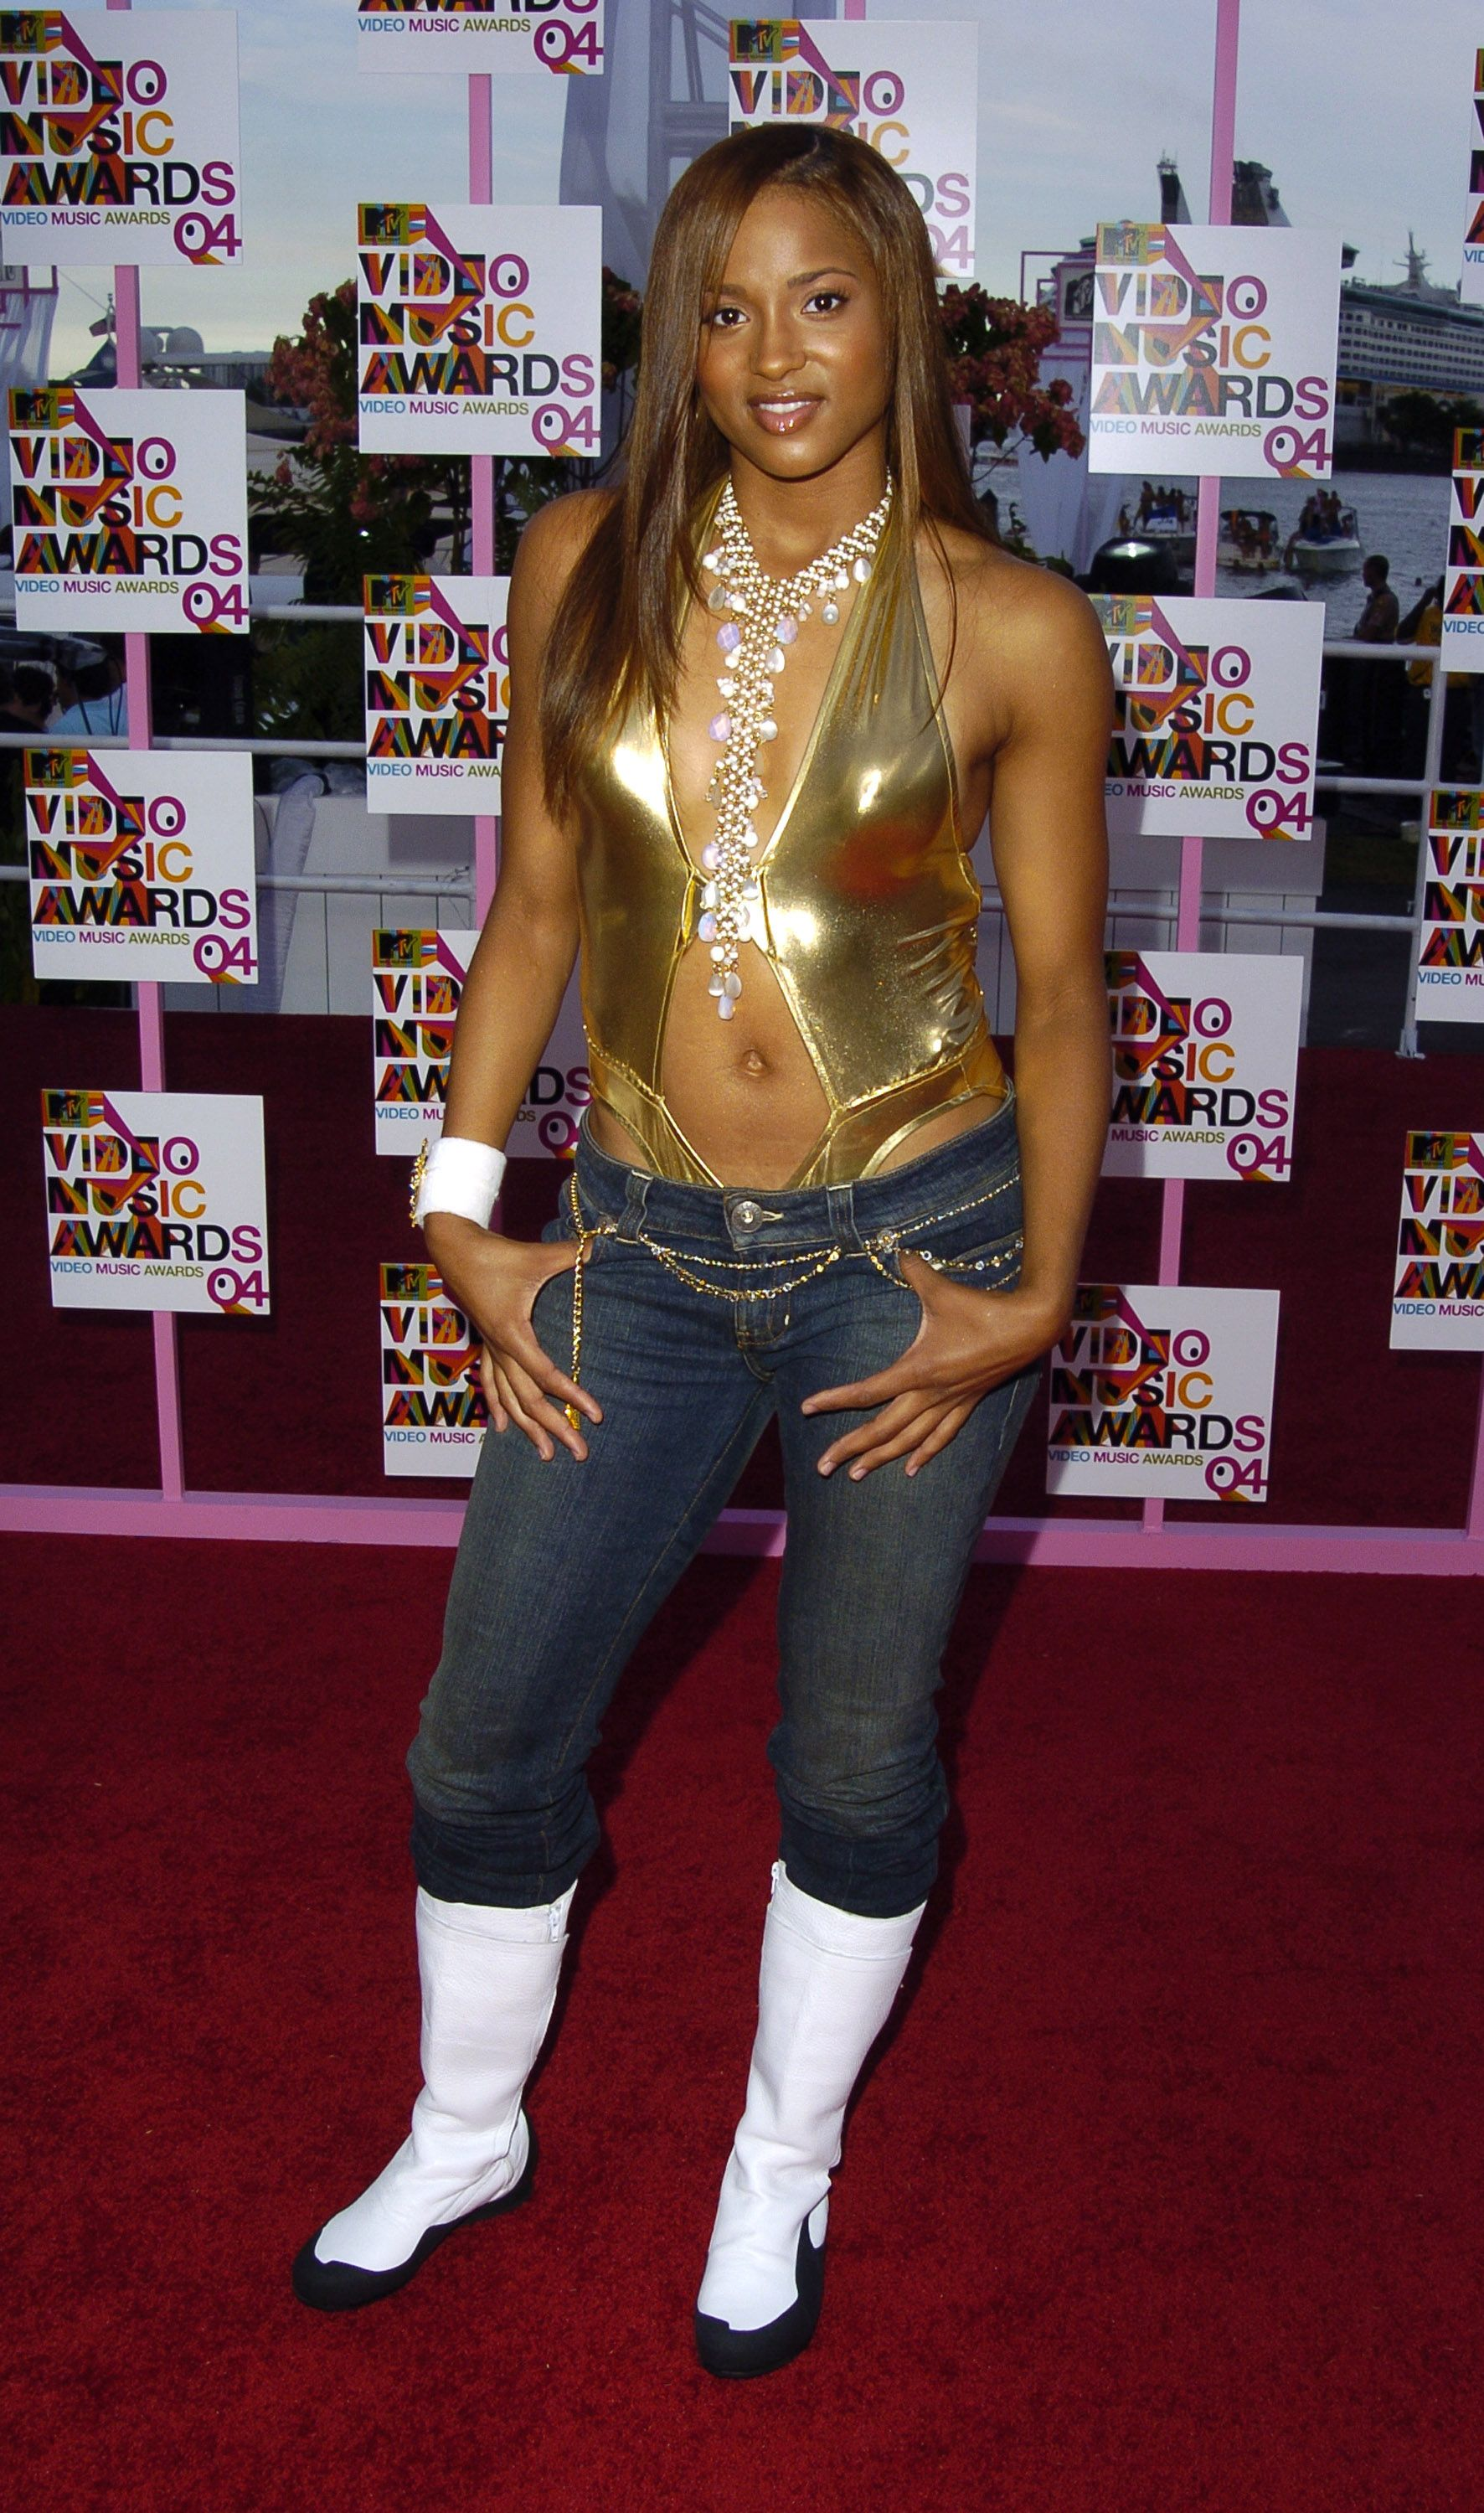 Singer Ciara attending the 2004 MTV Video Music Awards in Florida.   Photo: Getty Images